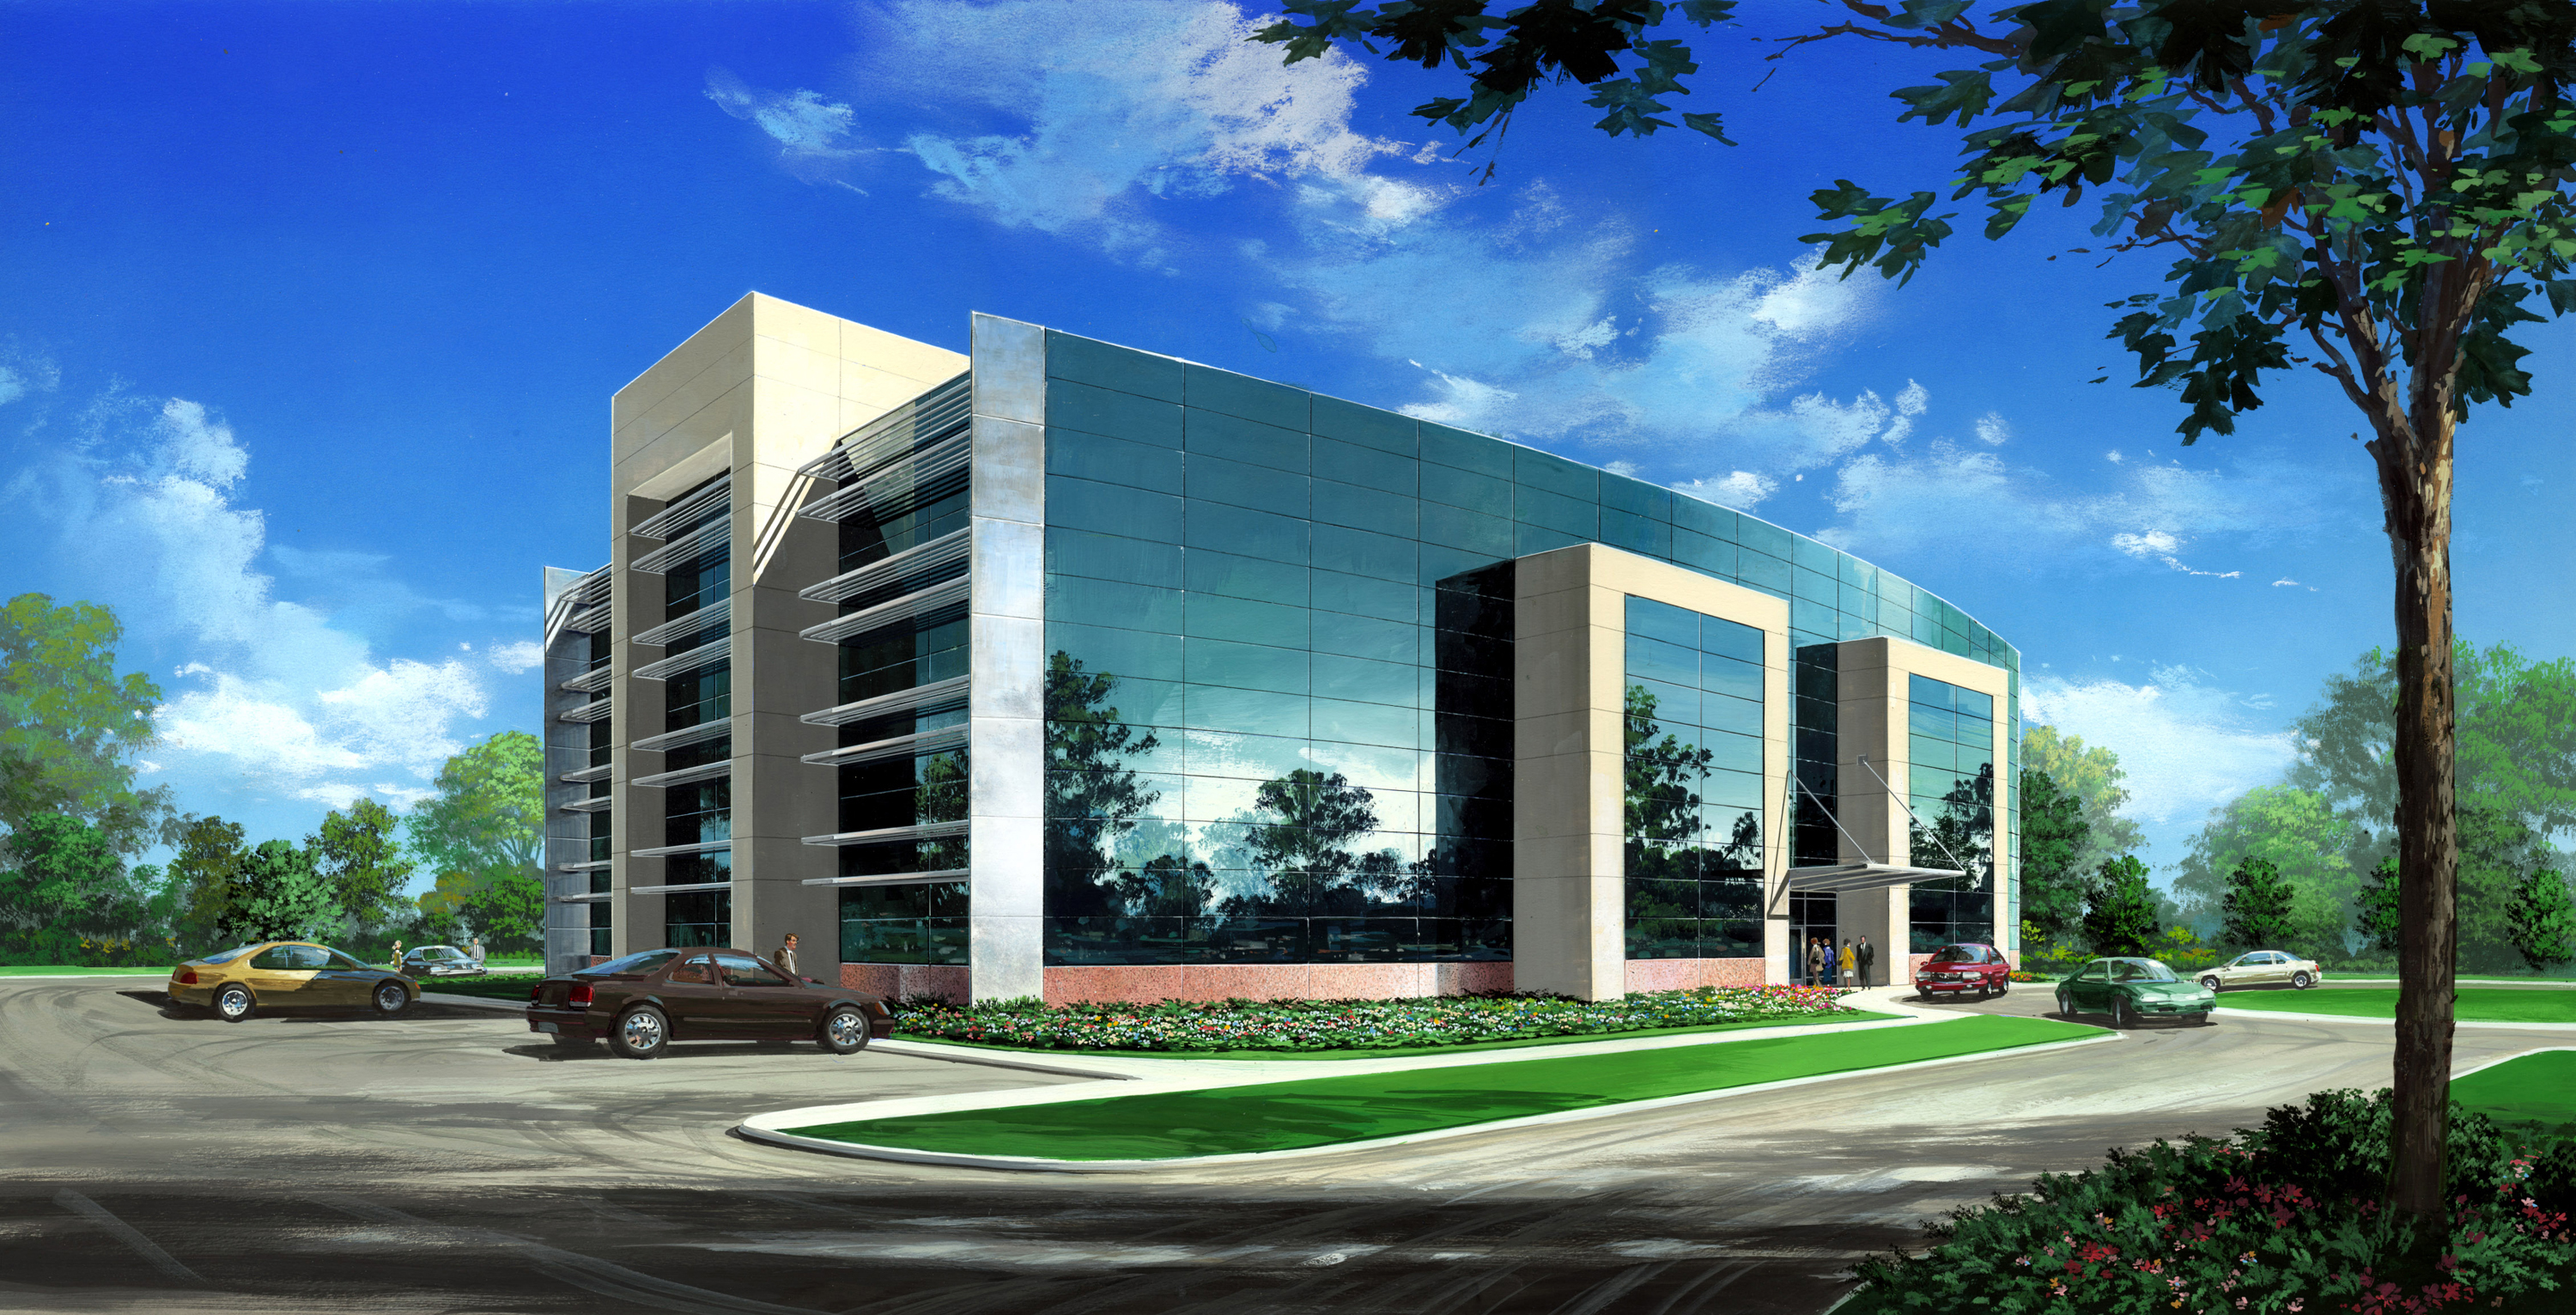 Nasa amarshall center to break ground june 10 on new for Concept building